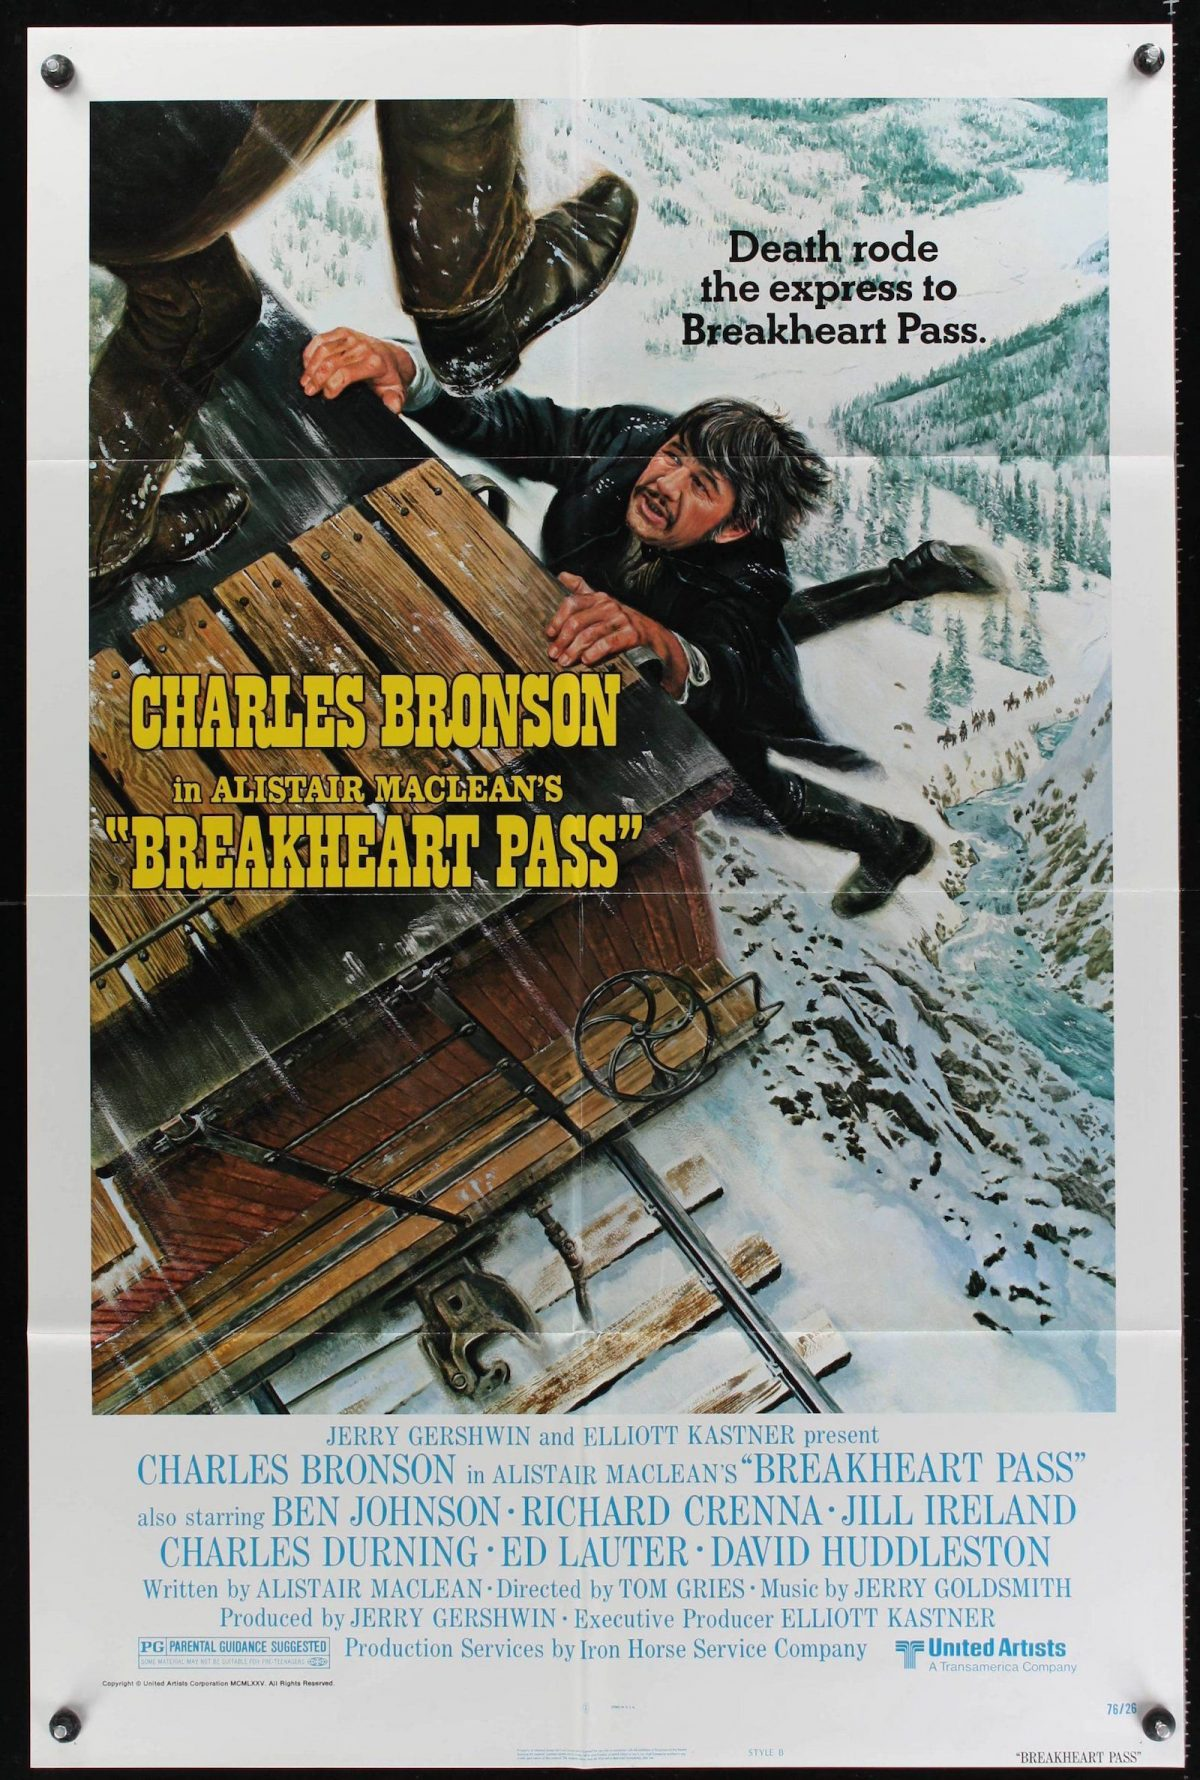 Alistair MacLean, Breakheart Pass, film, Charles Bronson